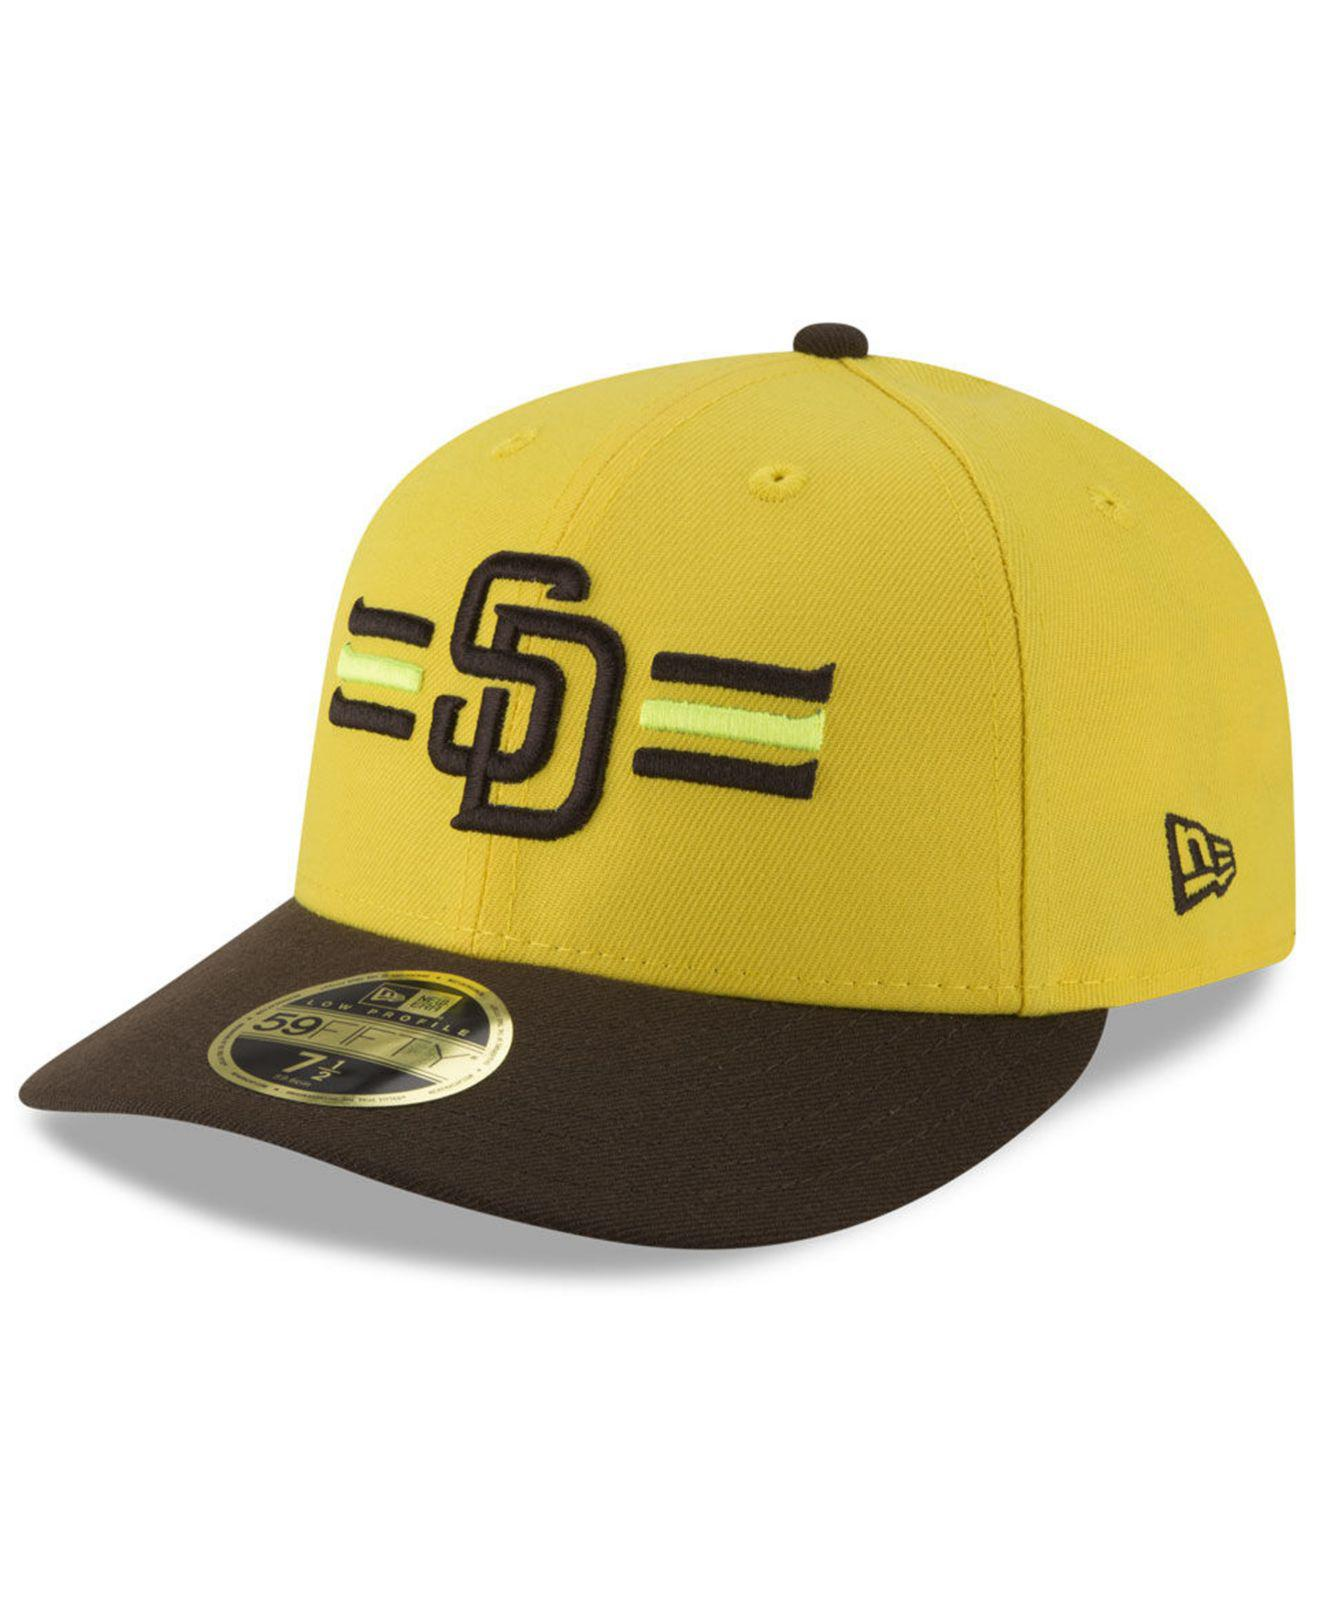 quality design 74fc6 9d6a4 ... release date where to buy ktz. mens yellow san diego padres players  weekend low profile